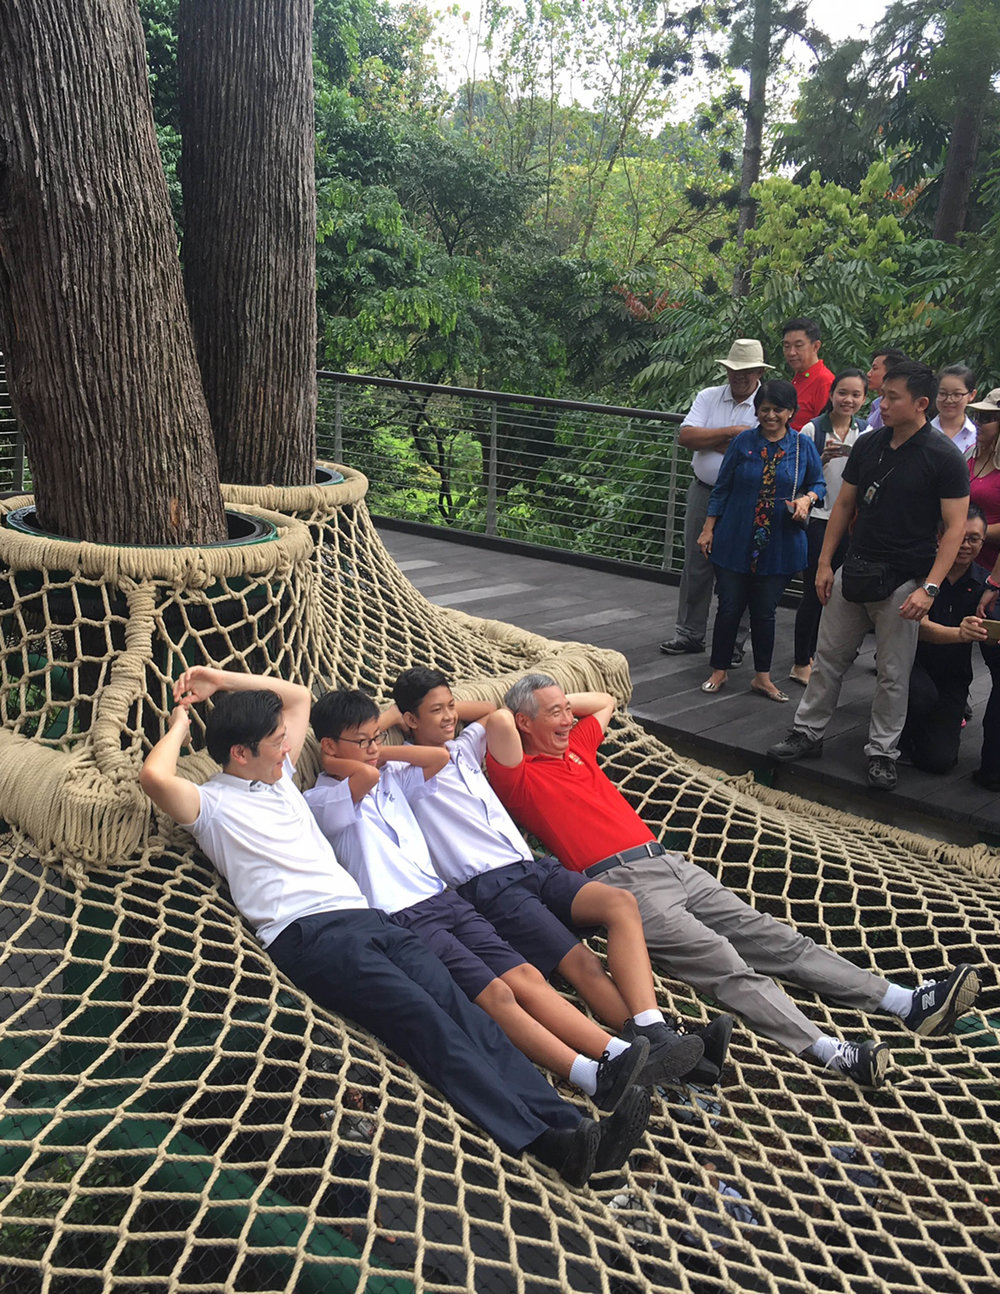 The Prime Minister and Minister of National Development relaxing for the Press at the Canopy Web in the Learning Forest SBG - by Stephen Caffyn Landscape Design